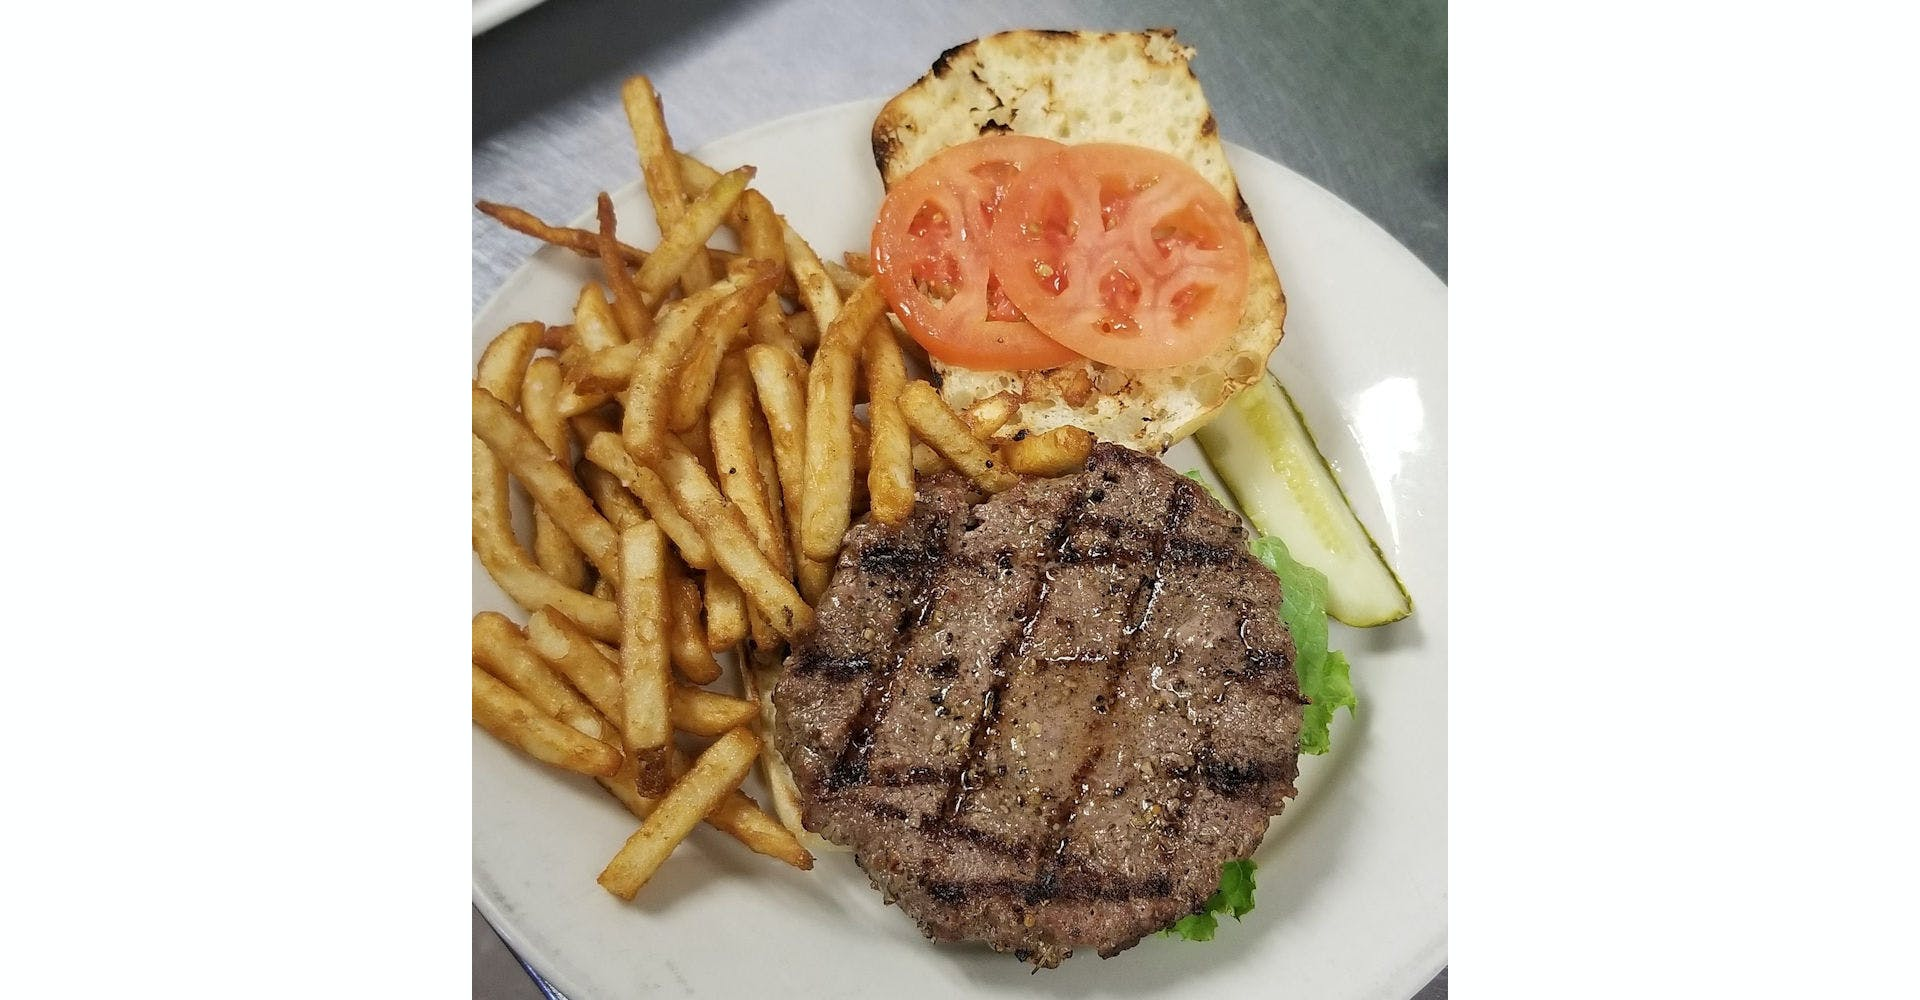 Build-A-Burger from Grazies Italian Grill in Stevens Point, WI